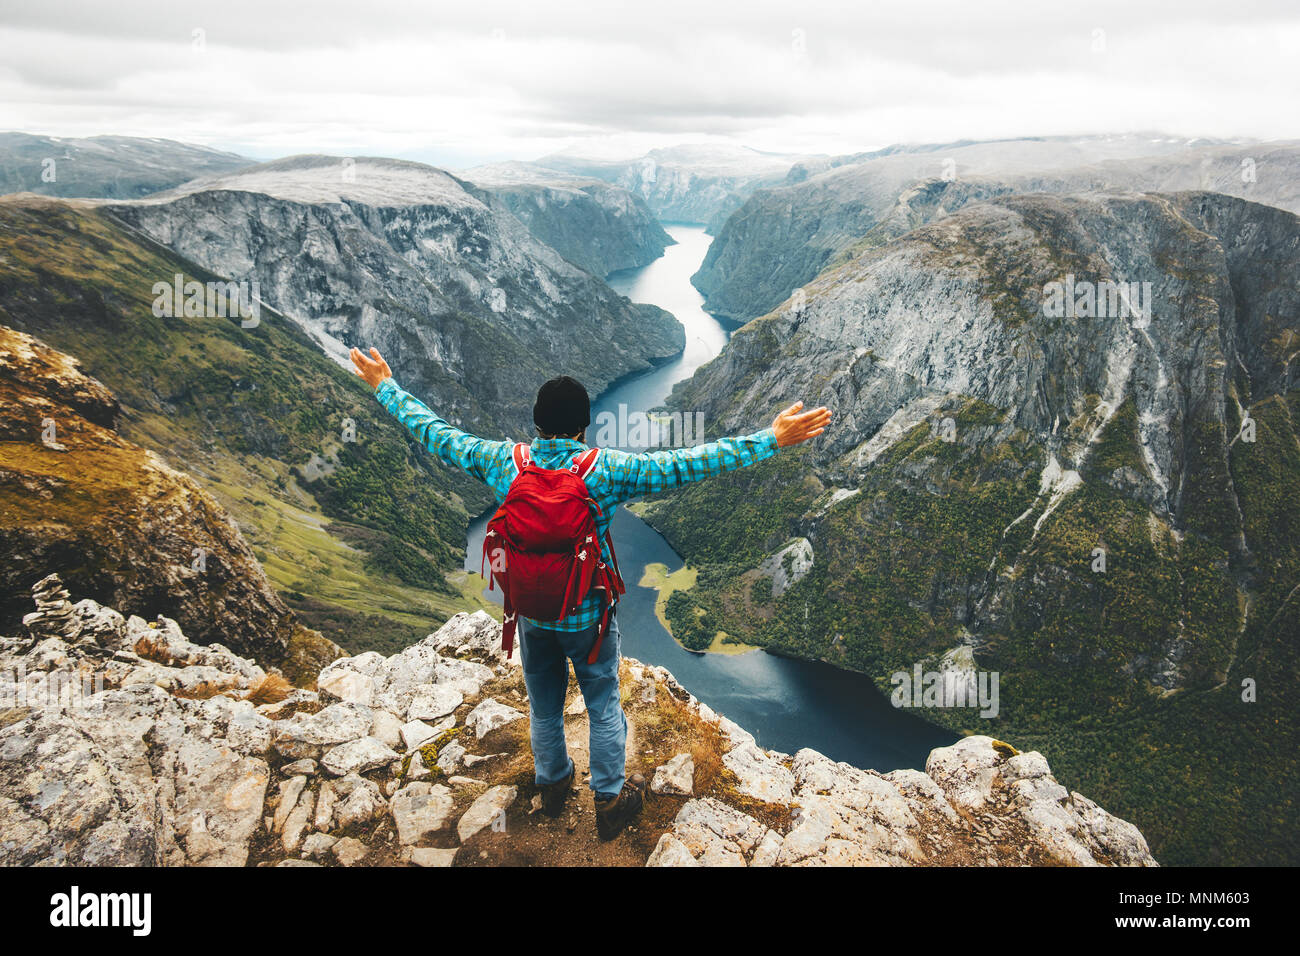 Happy Man backpacker on mountain summit traveling in Norway Lifestyle Travel adventure active vacations above Naeroyfjord success wellness healthy lif - Stock Image